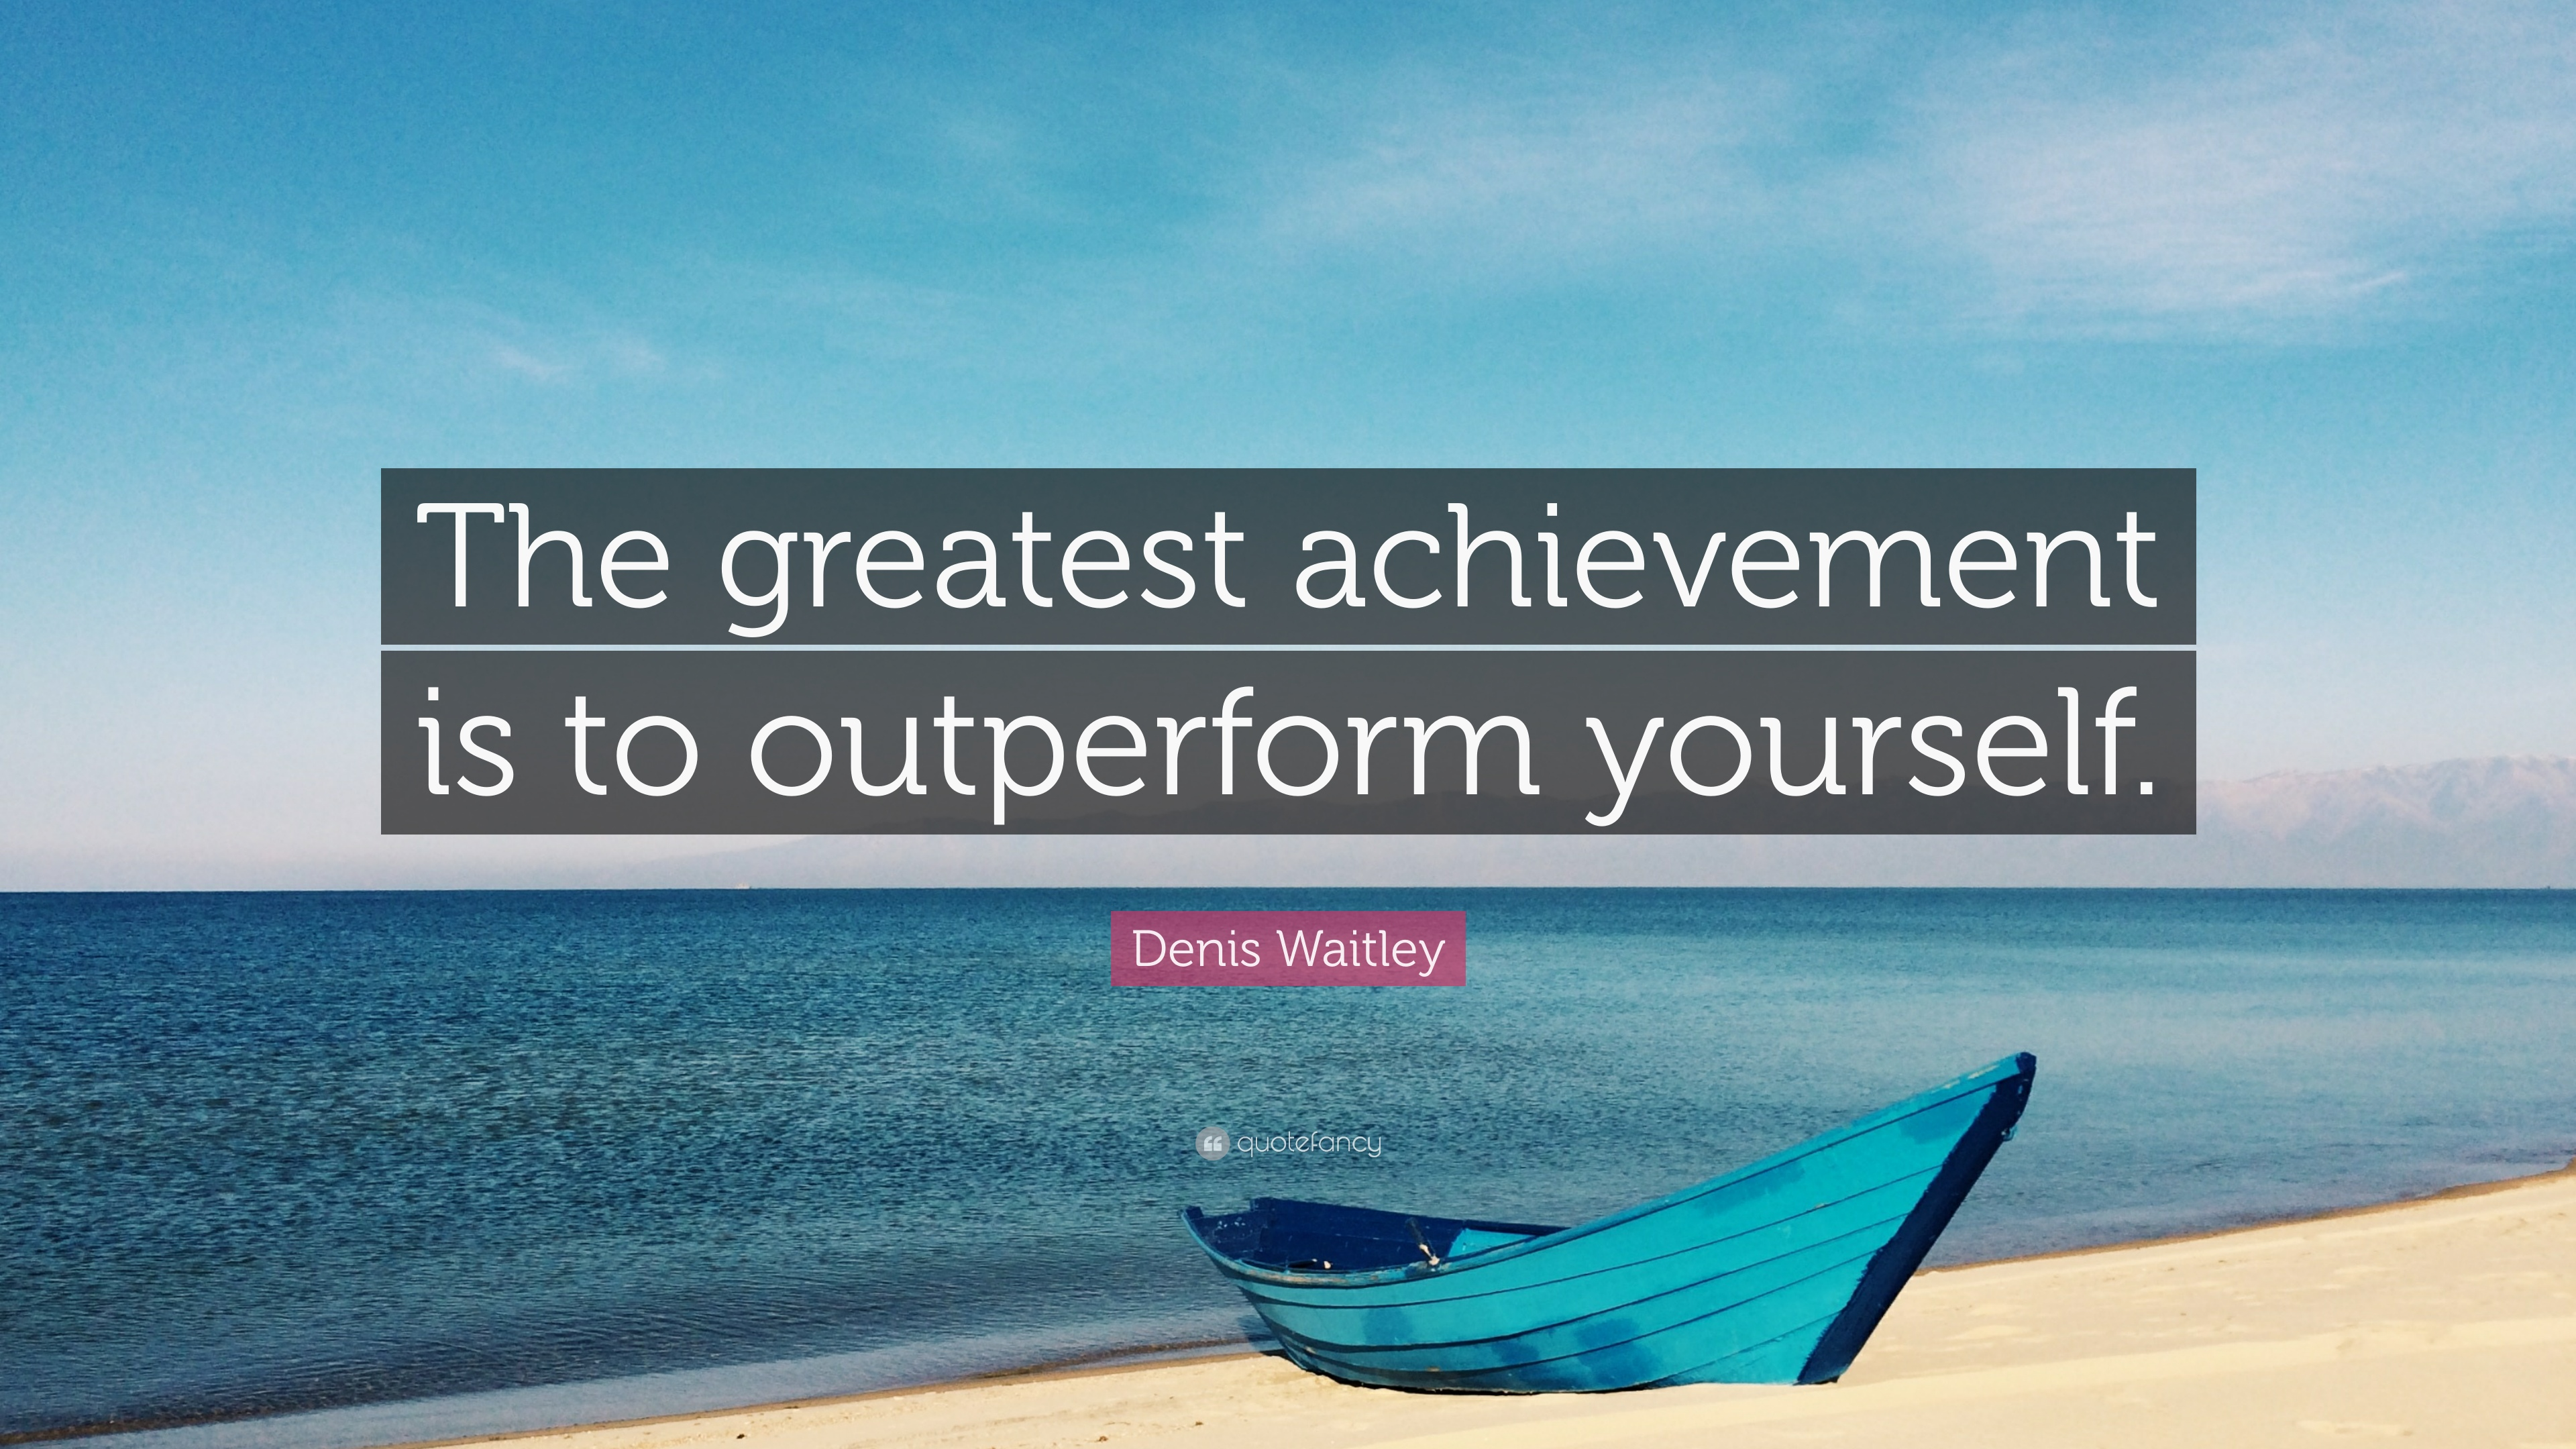 denis waitley quote the greatest achievement is to outperform denis waitley quote the greatest achievement is to outperform yourself